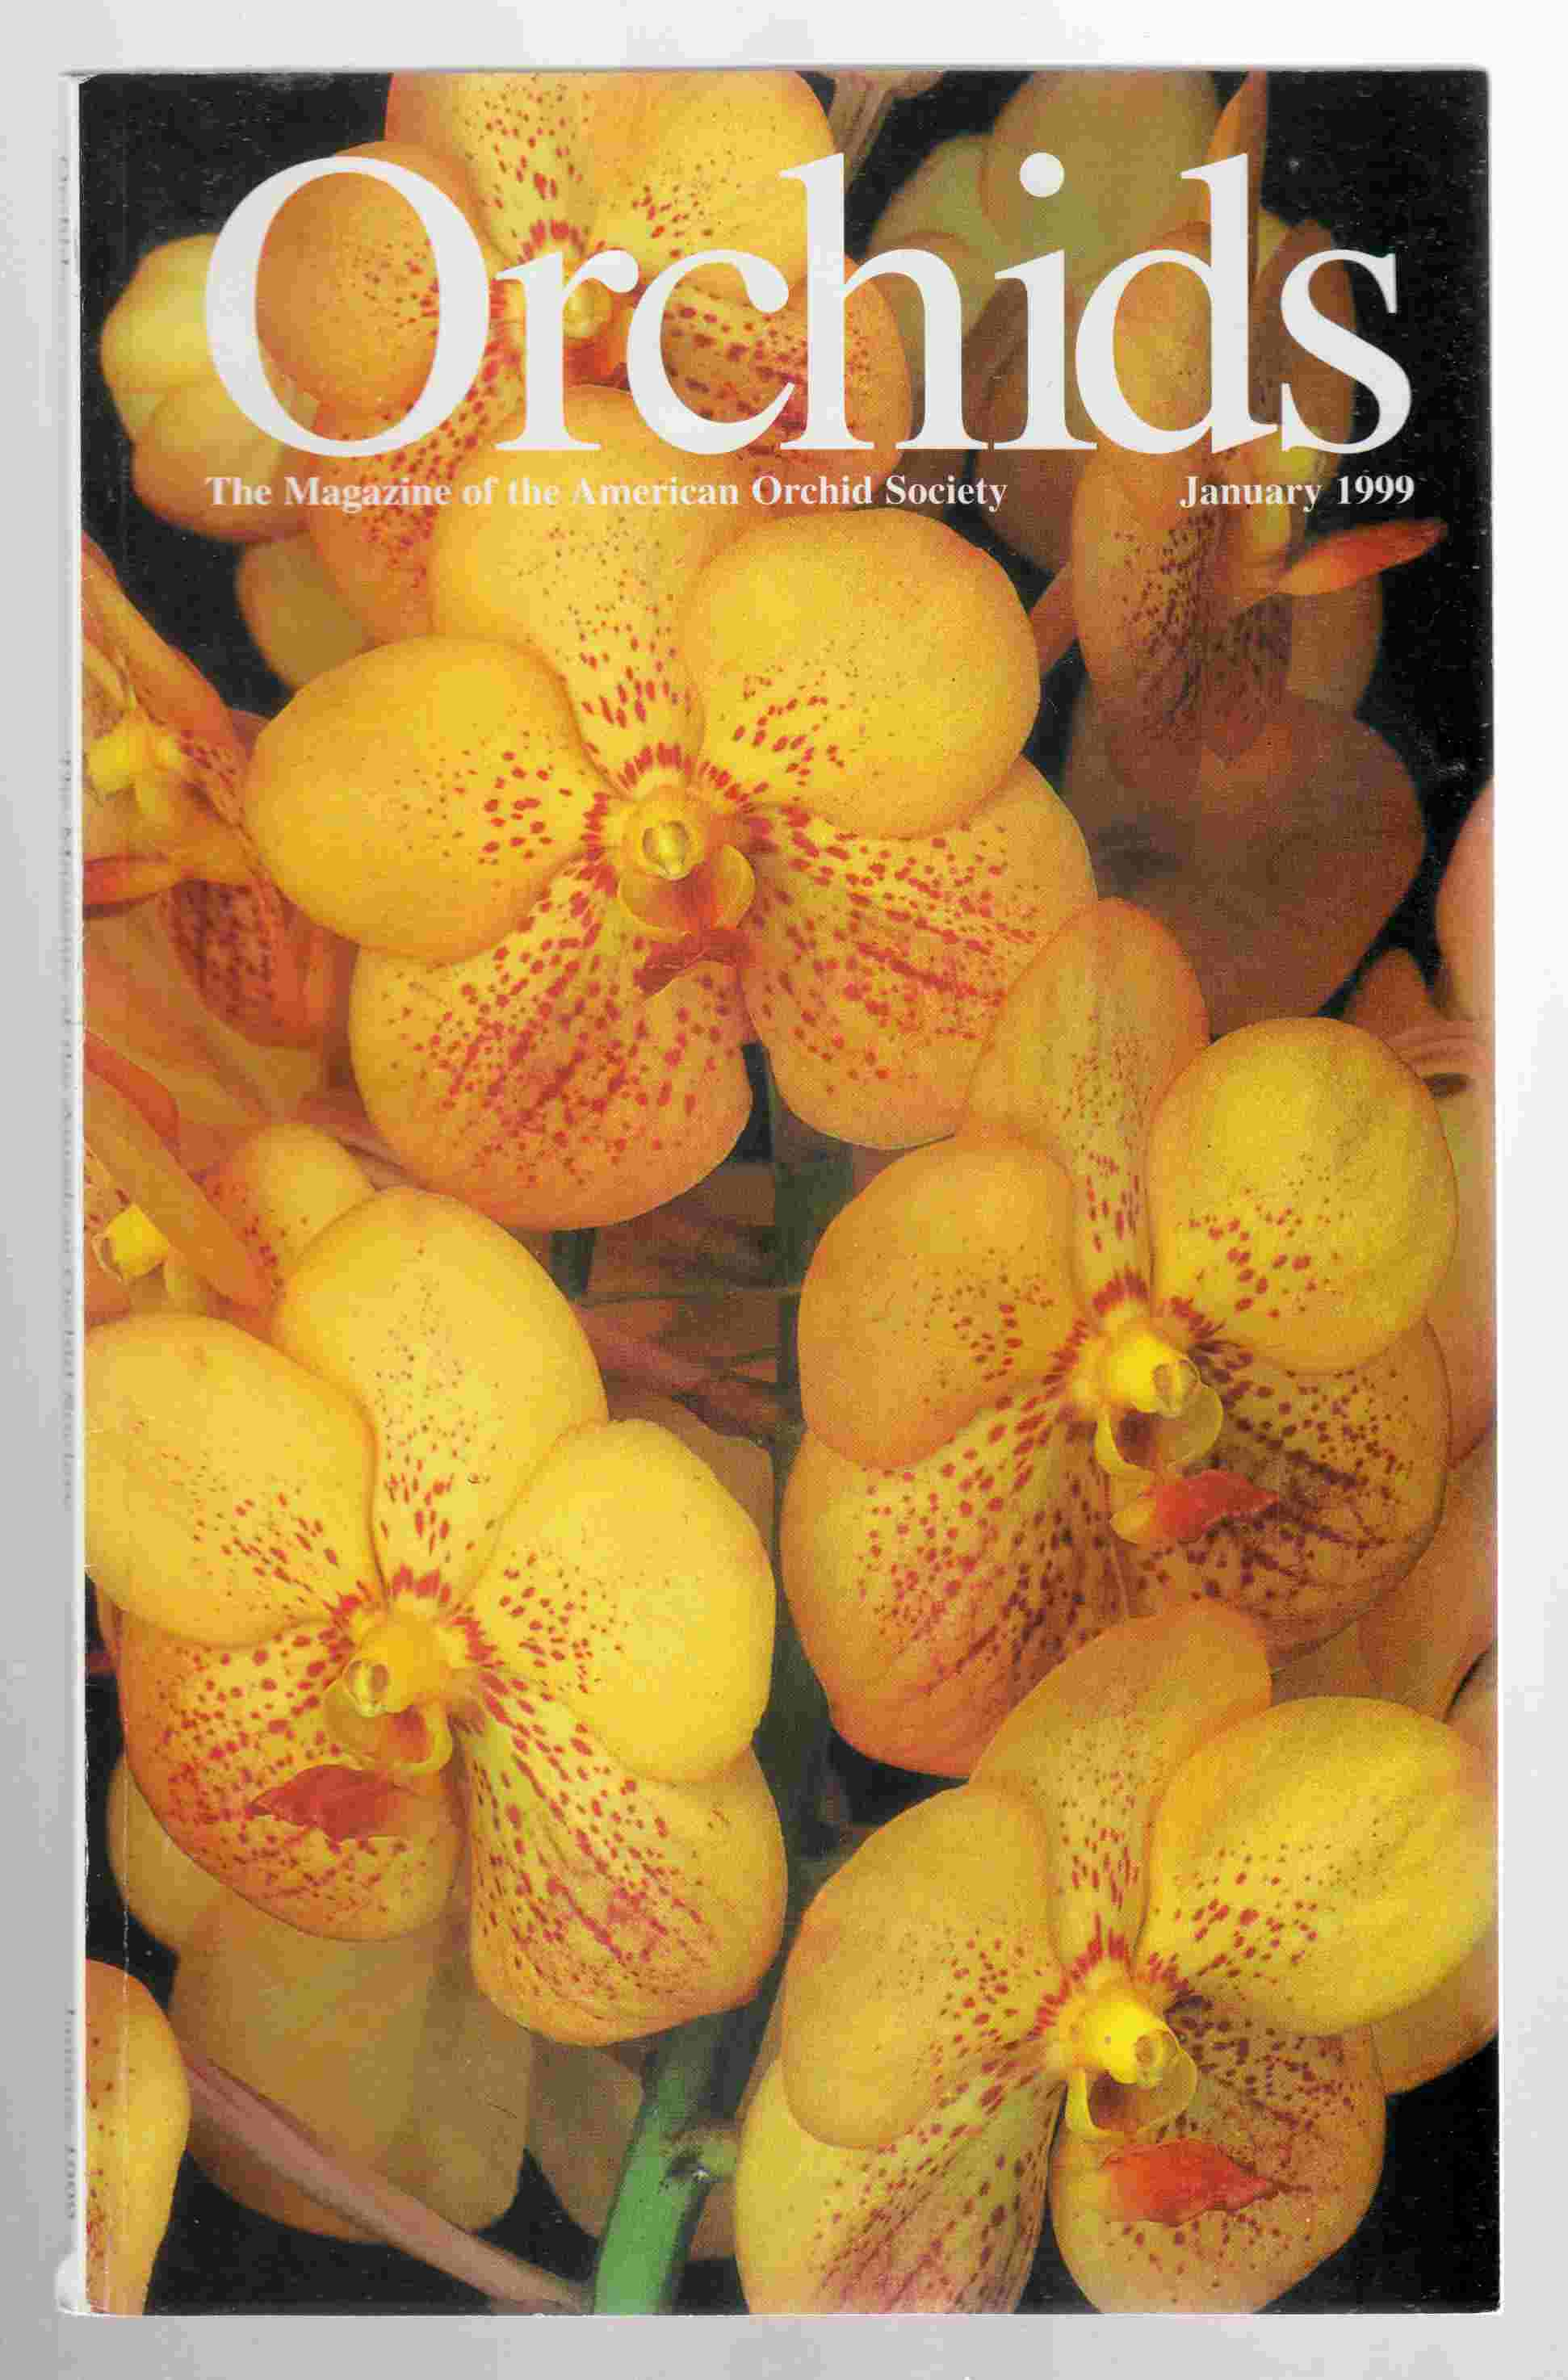 Image for Orchids Magazine Vol. 68, No. 1 January 1999